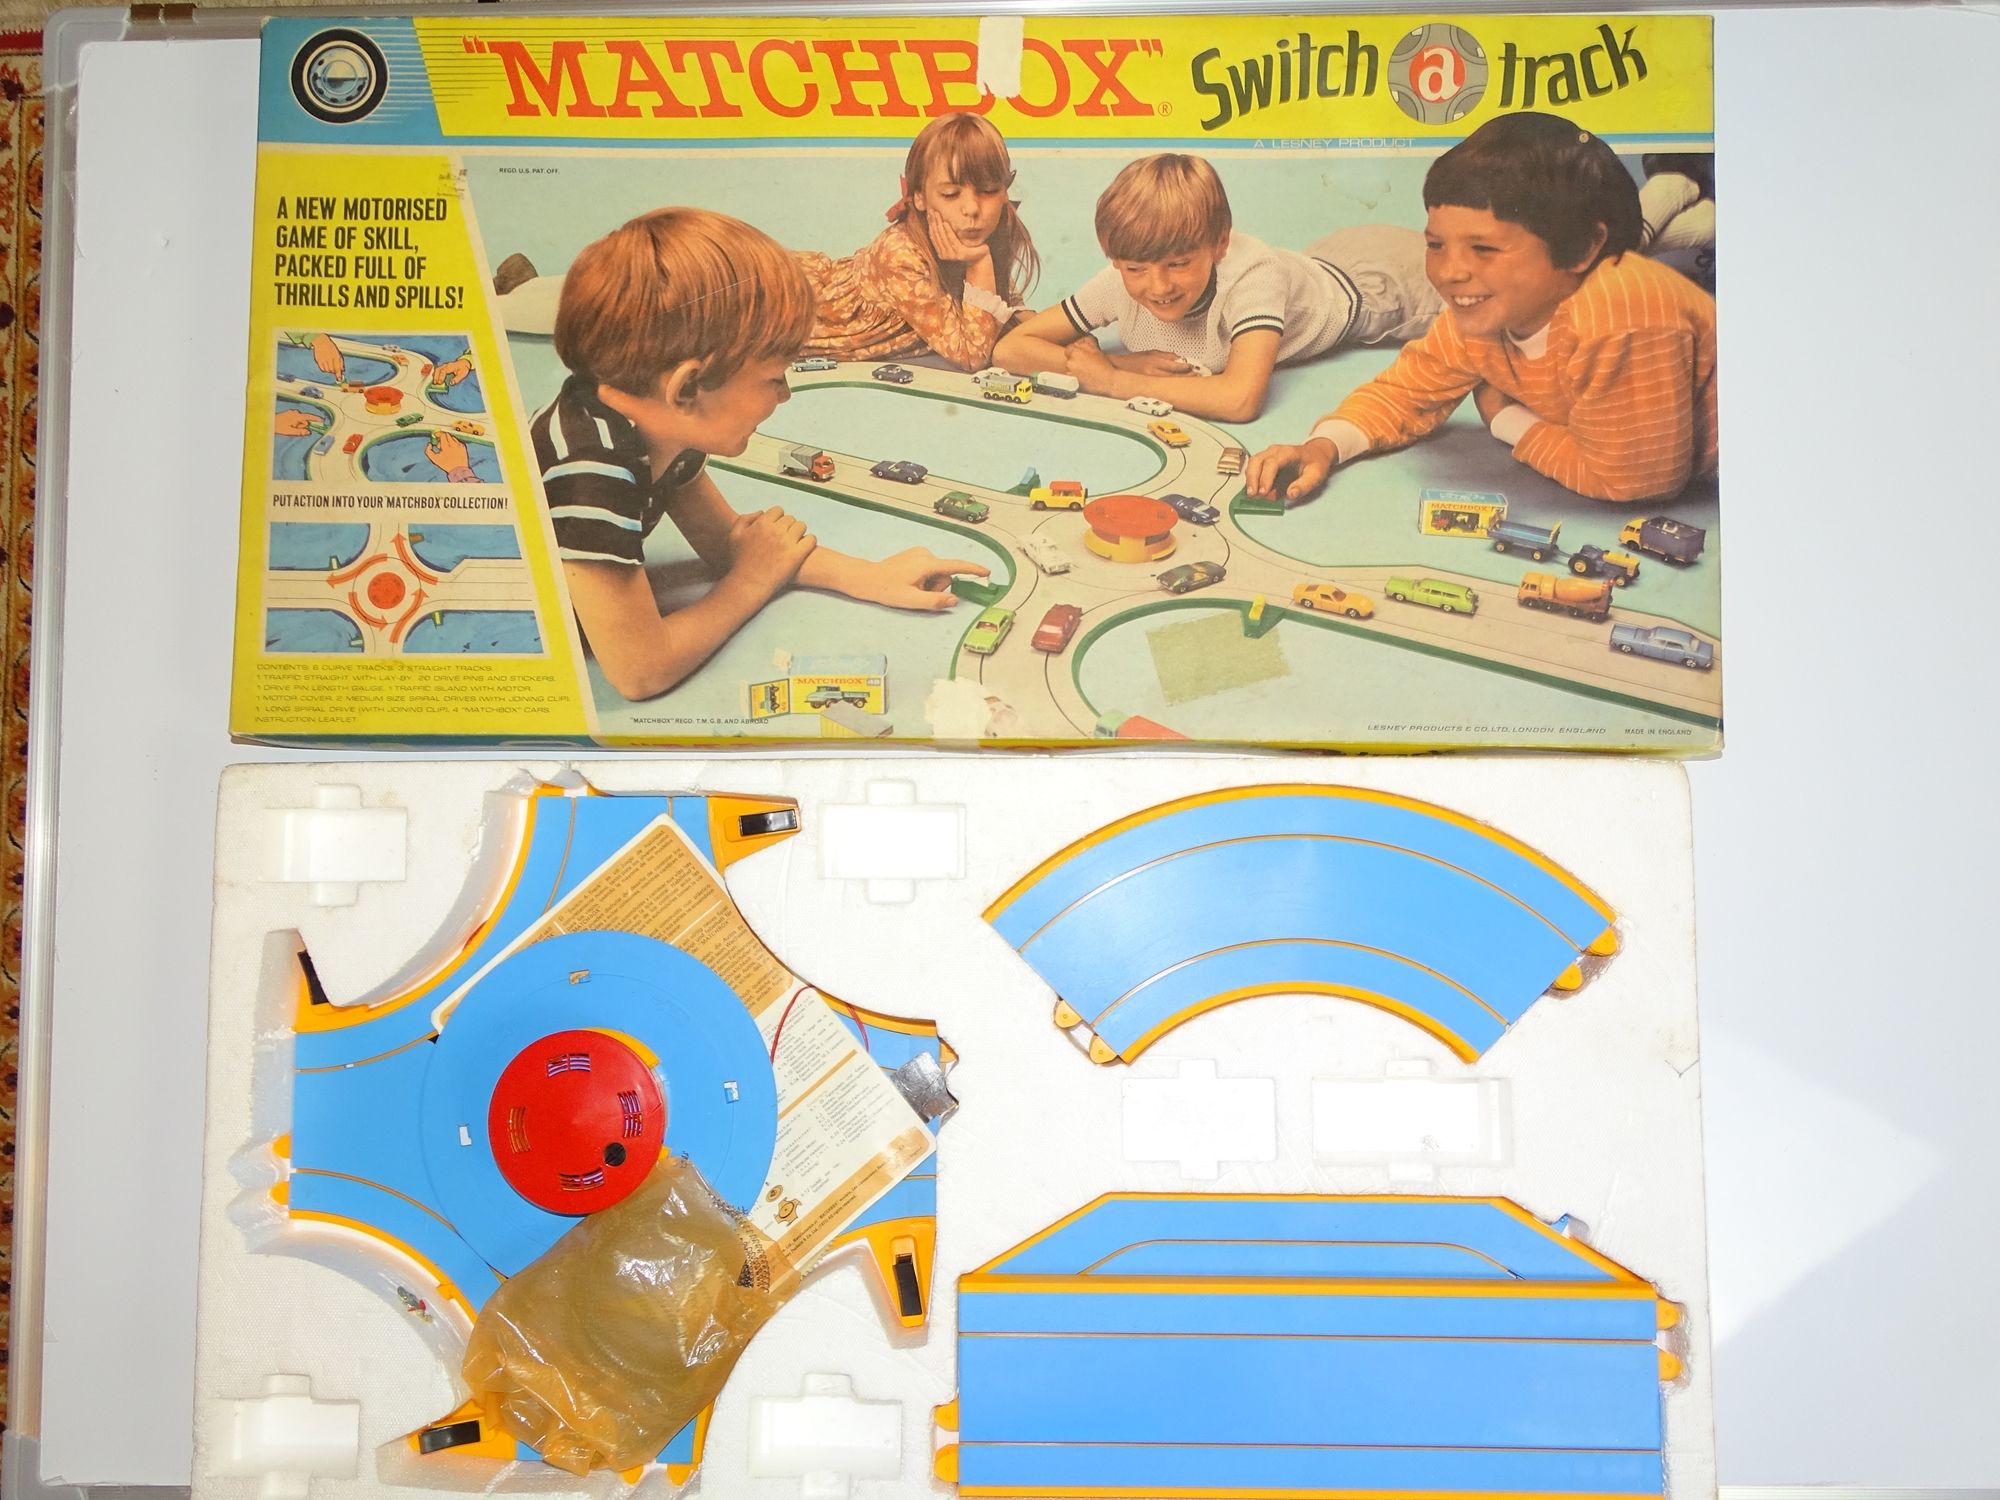 Lot 14 - A MATCHBOX SWITCH-A-TRACK Roadway Set - appears almost complete but cars are missing - G in F/G box